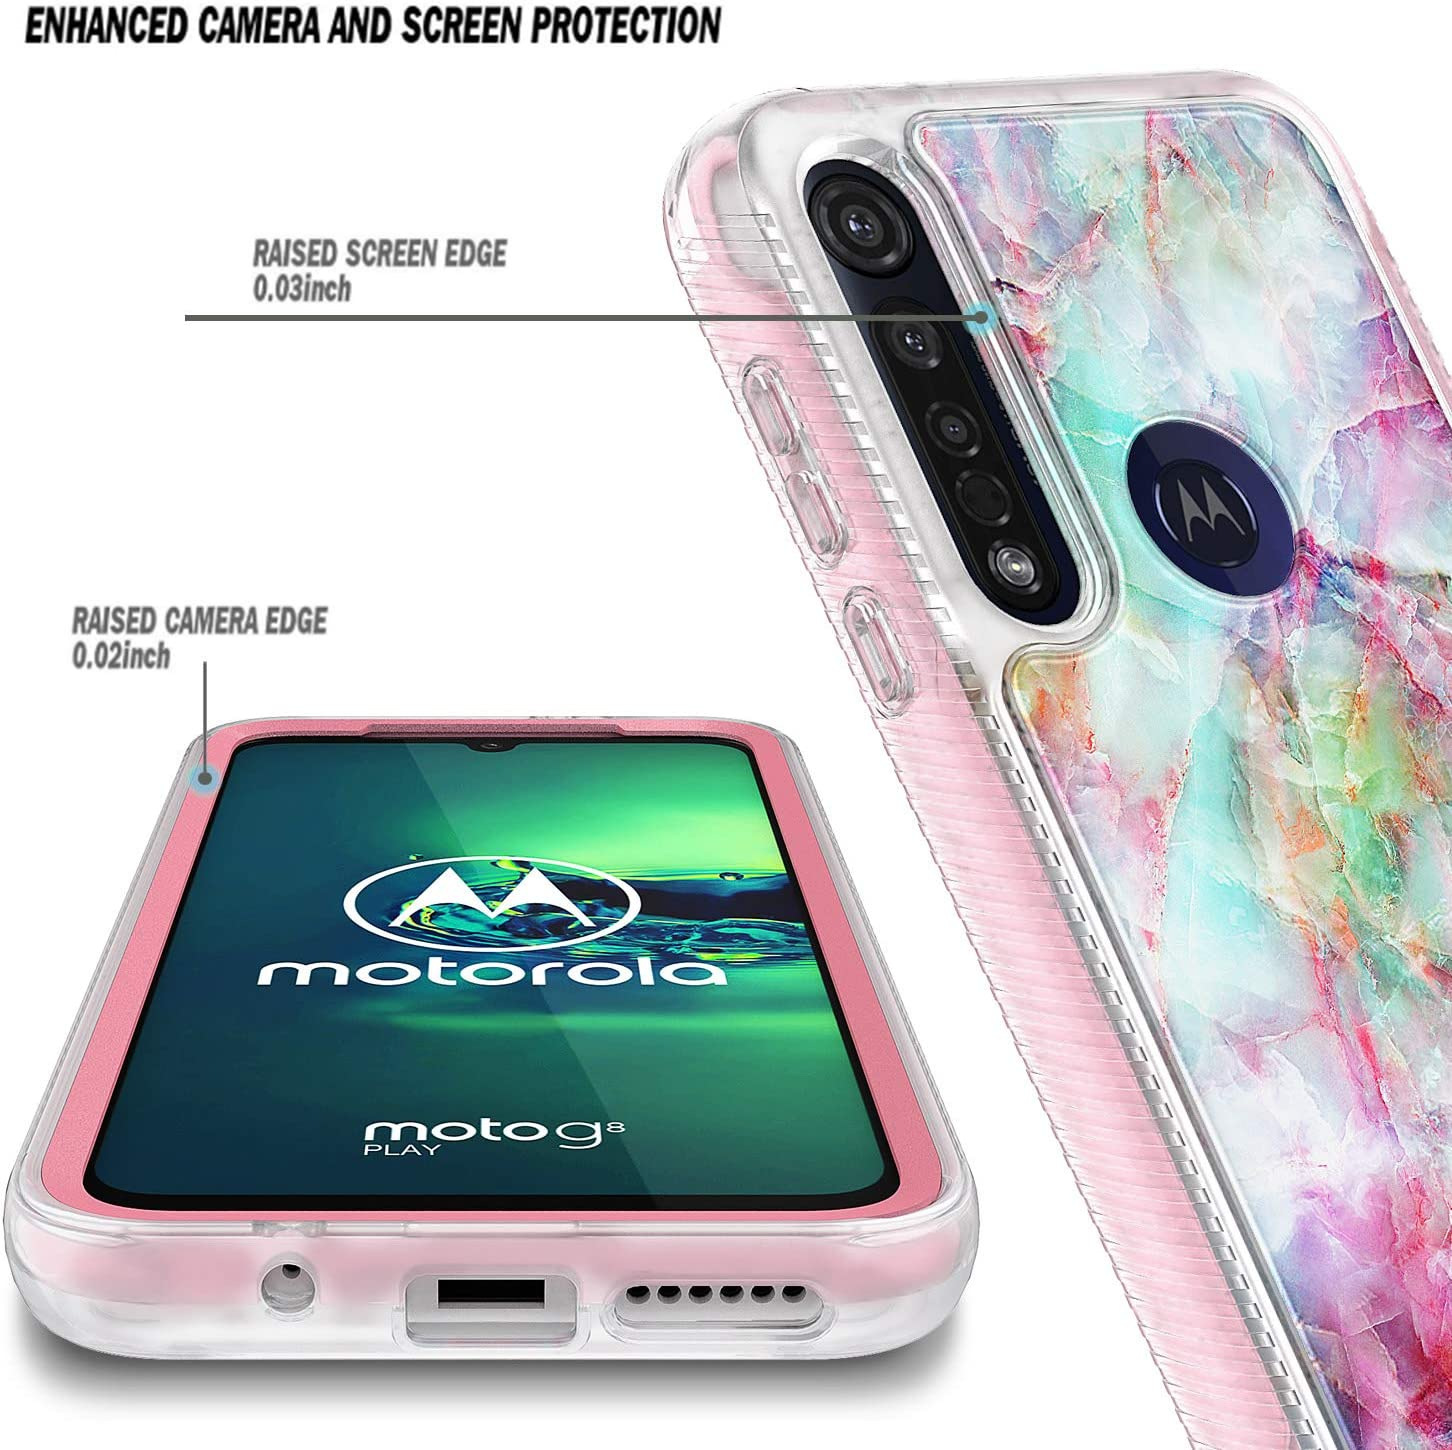 2019 Release Ultra Thin Shockproof Impact Extreme Durable Case -Fantasy Full-Body Protective Rugged Bumper with Built-in Screen Protector Motorola Moto One Macro E-Began Case for Moto G8 Play